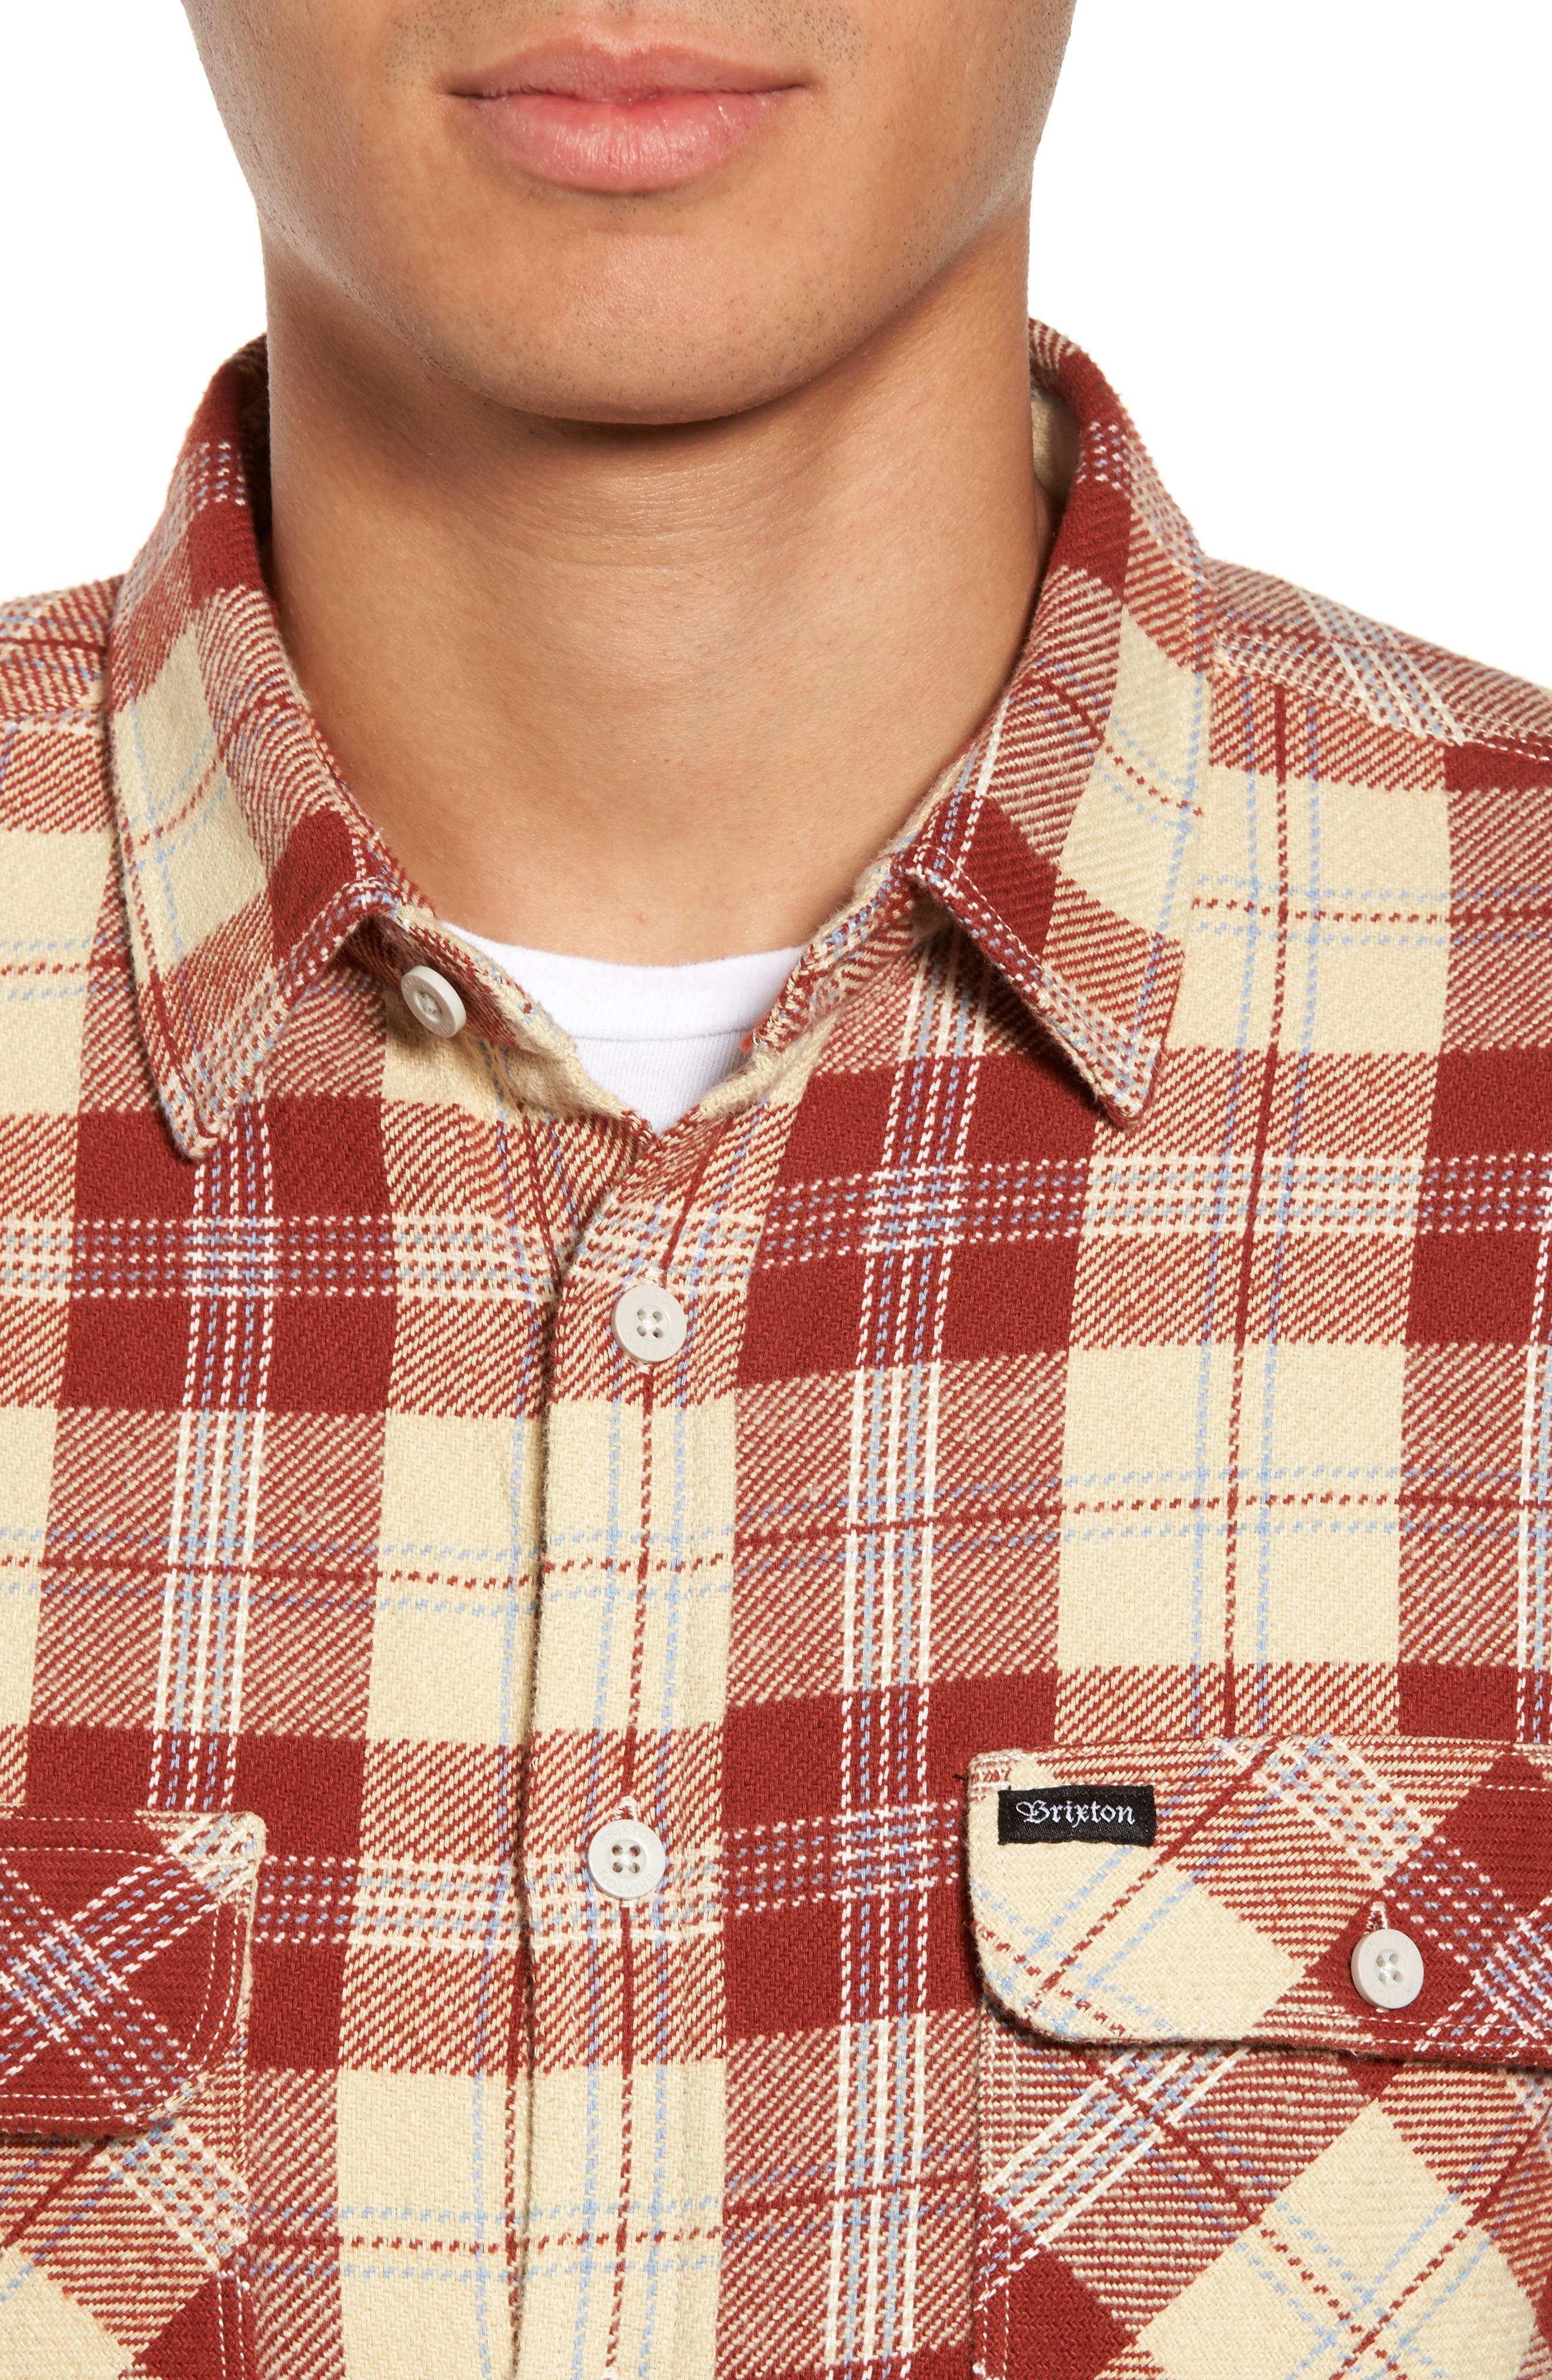 'Archie' Plaid Flannel Shirt,                             Alternate thumbnail 4, color,                             Brick